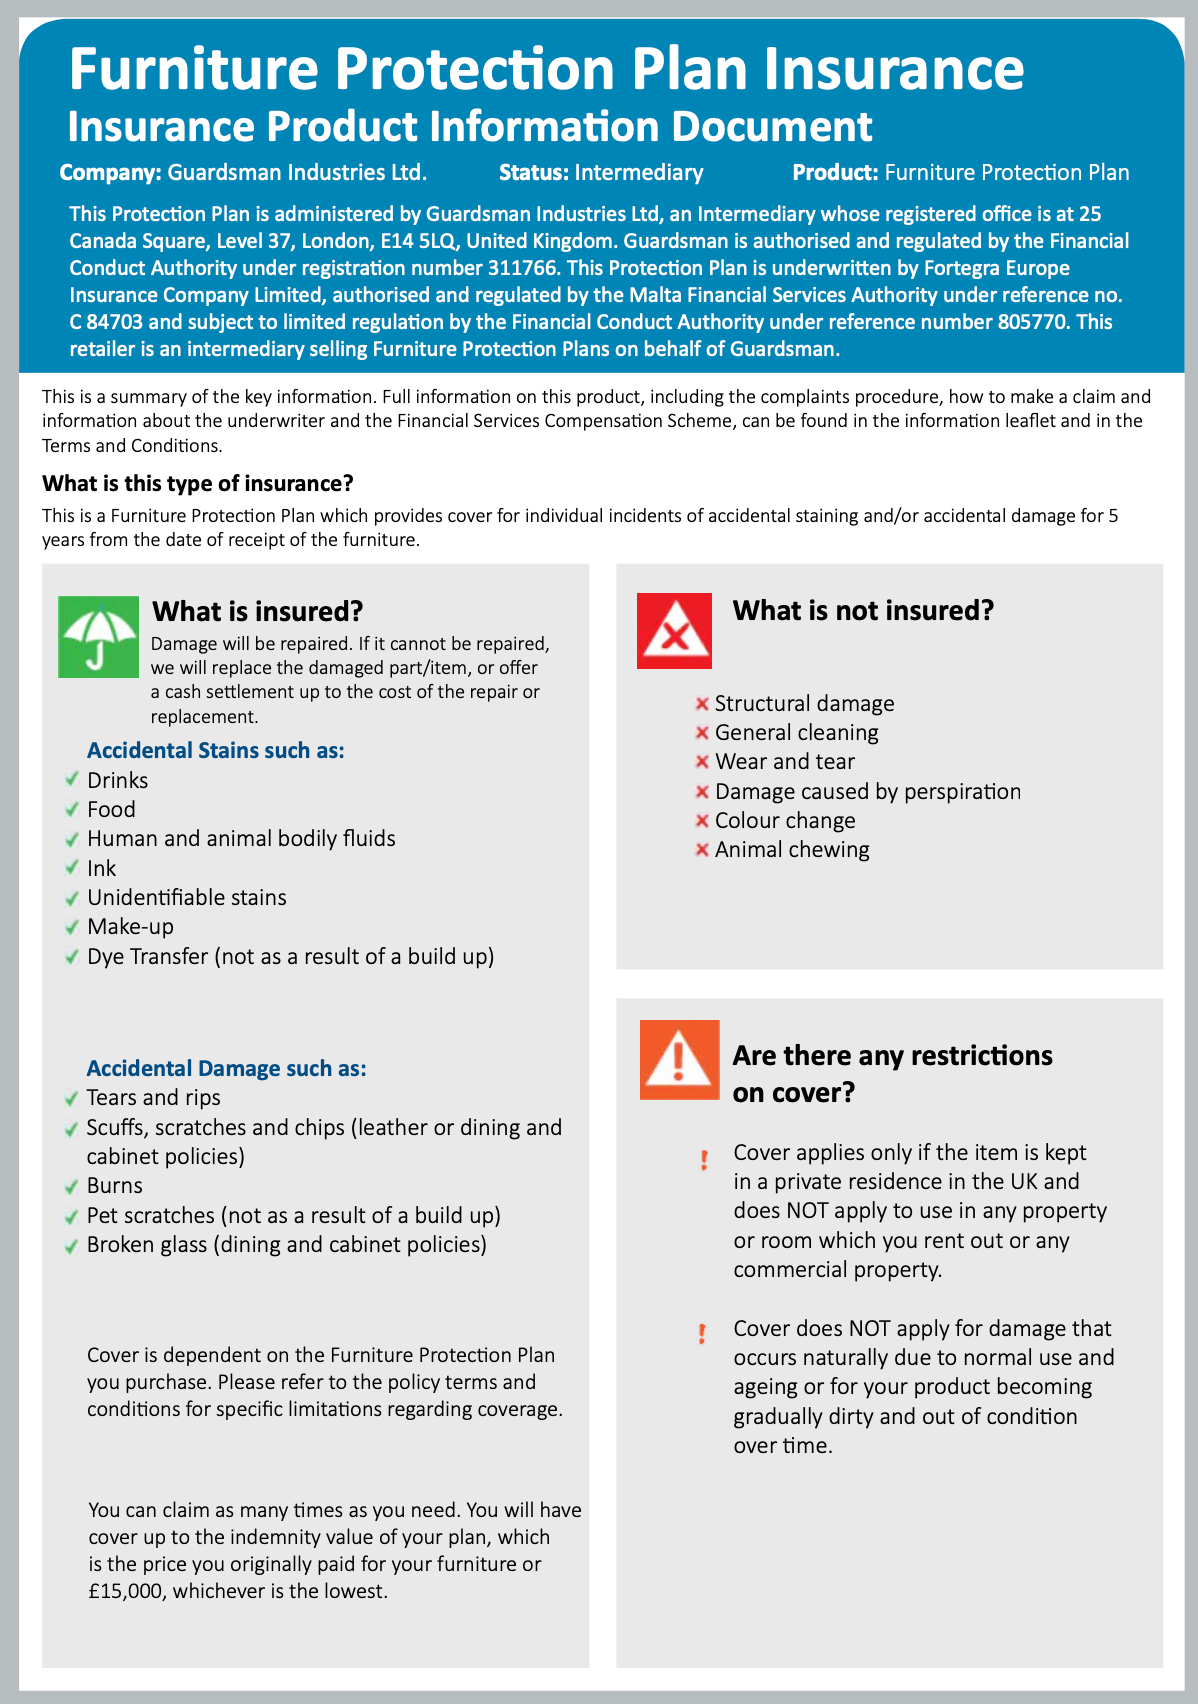 Guardsman Furniture Protection Insurance Product Information Document page 1